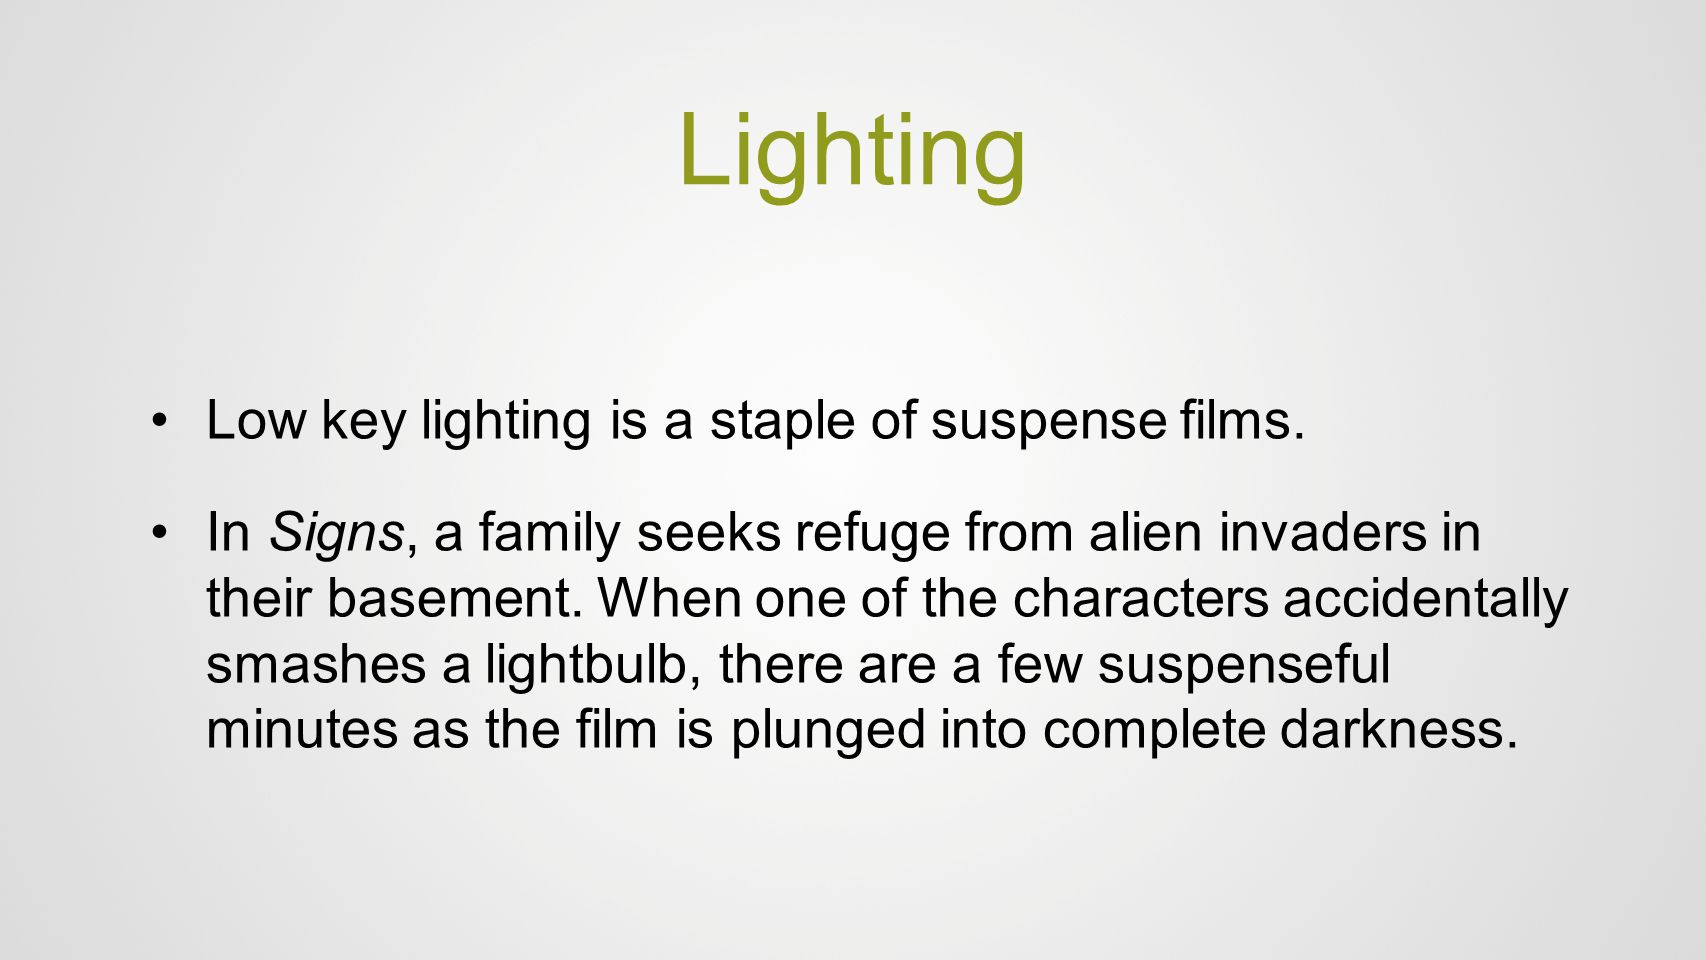 Lighting Low key lighting is a staple of suspense films. In Signs, a family seeks refuge from alien invaders in their basement. When one of the charac